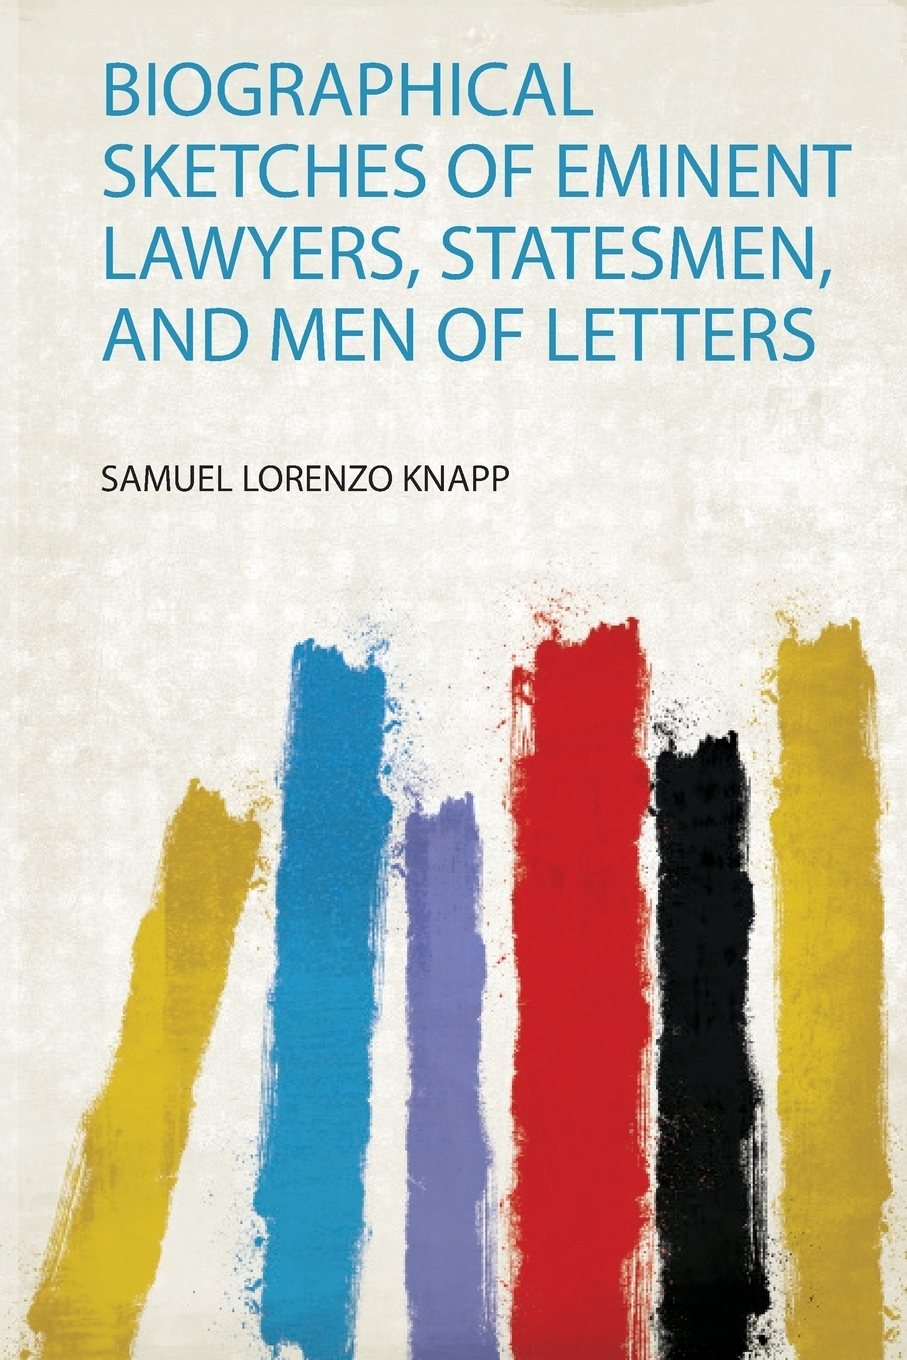 Biographical Sketches of Eminent Lawyers, Statesmen, and Men of Letters knapp samuel lorenzo biographical sketches of eminent lawyers statesmen and men of letters